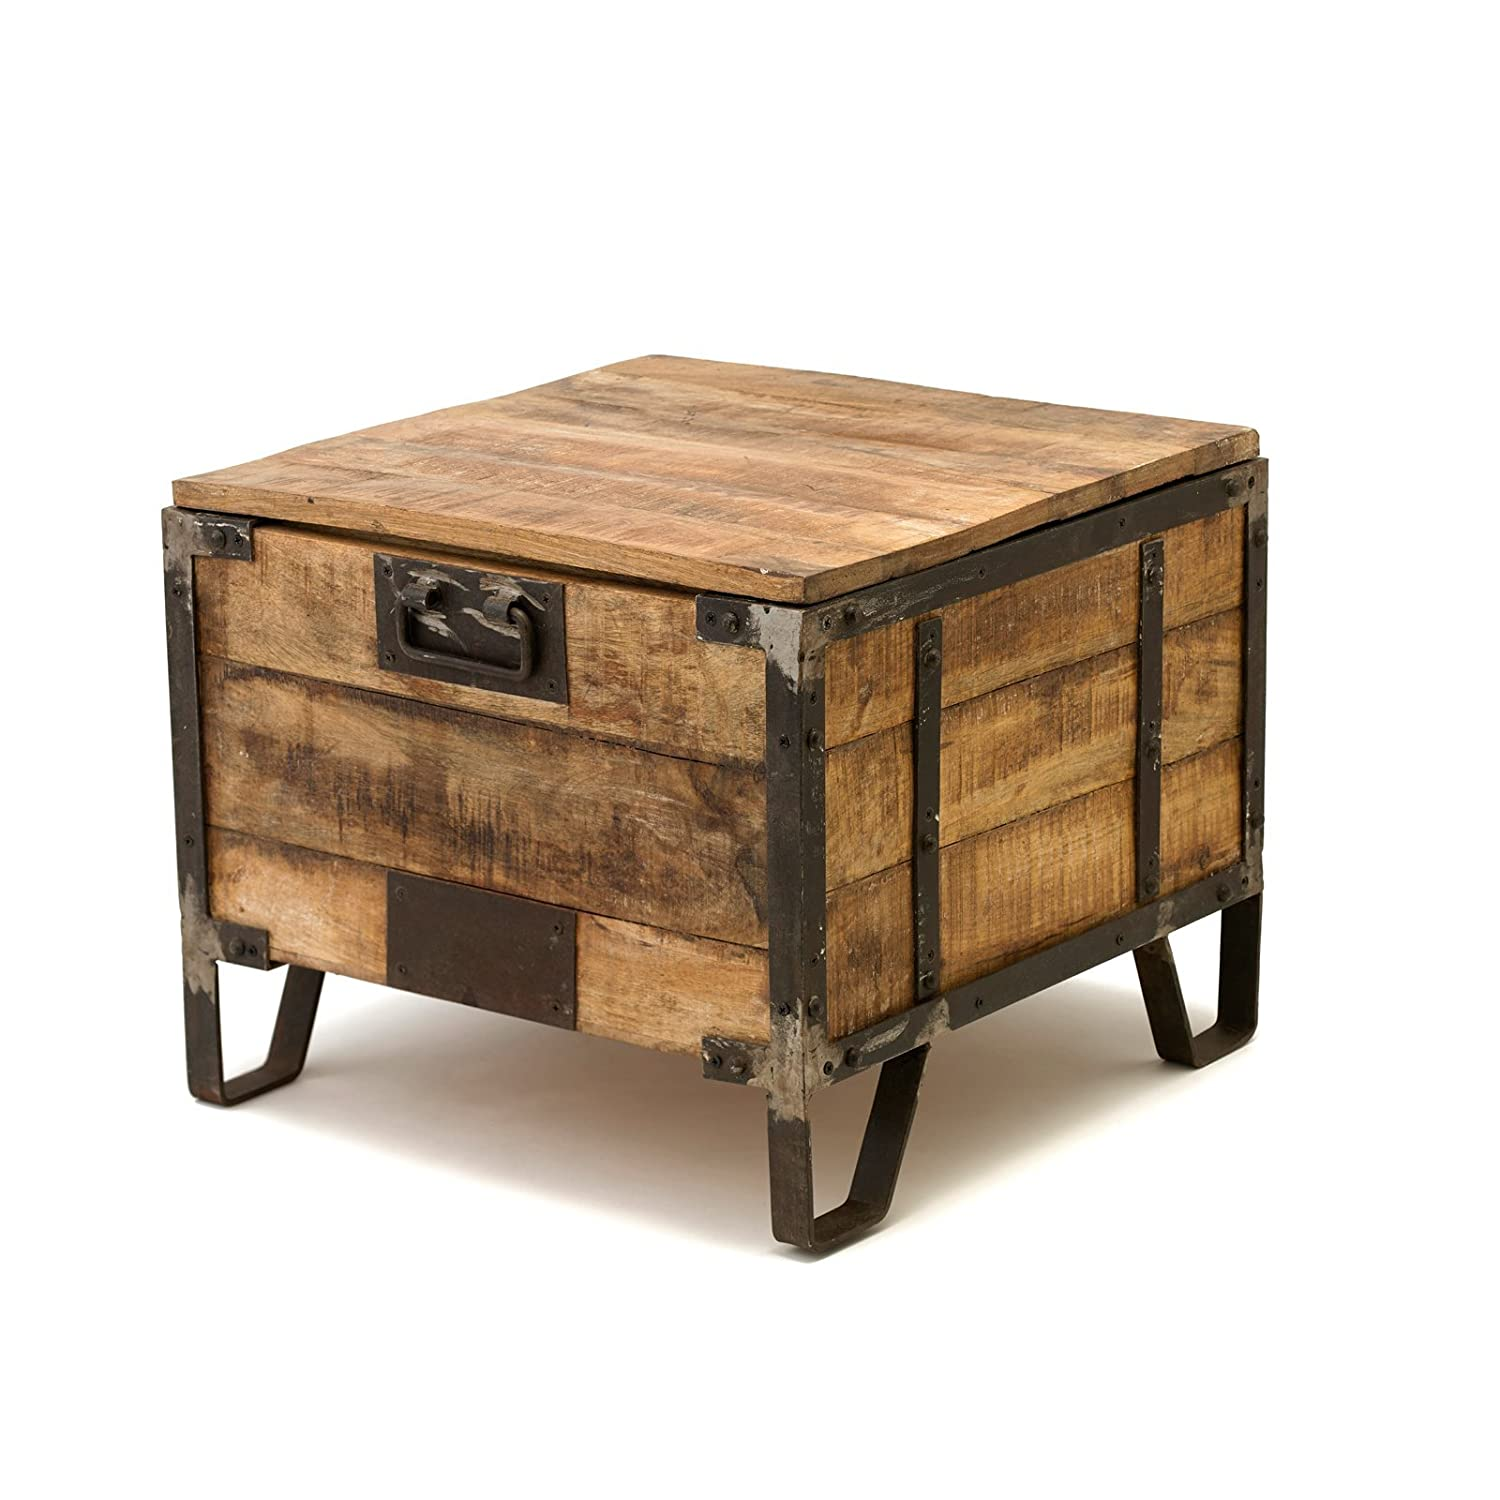 Amazon.com: The James   Handmade Trunk End Table From The Barrel Shack:  Kitchen U0026 Dining